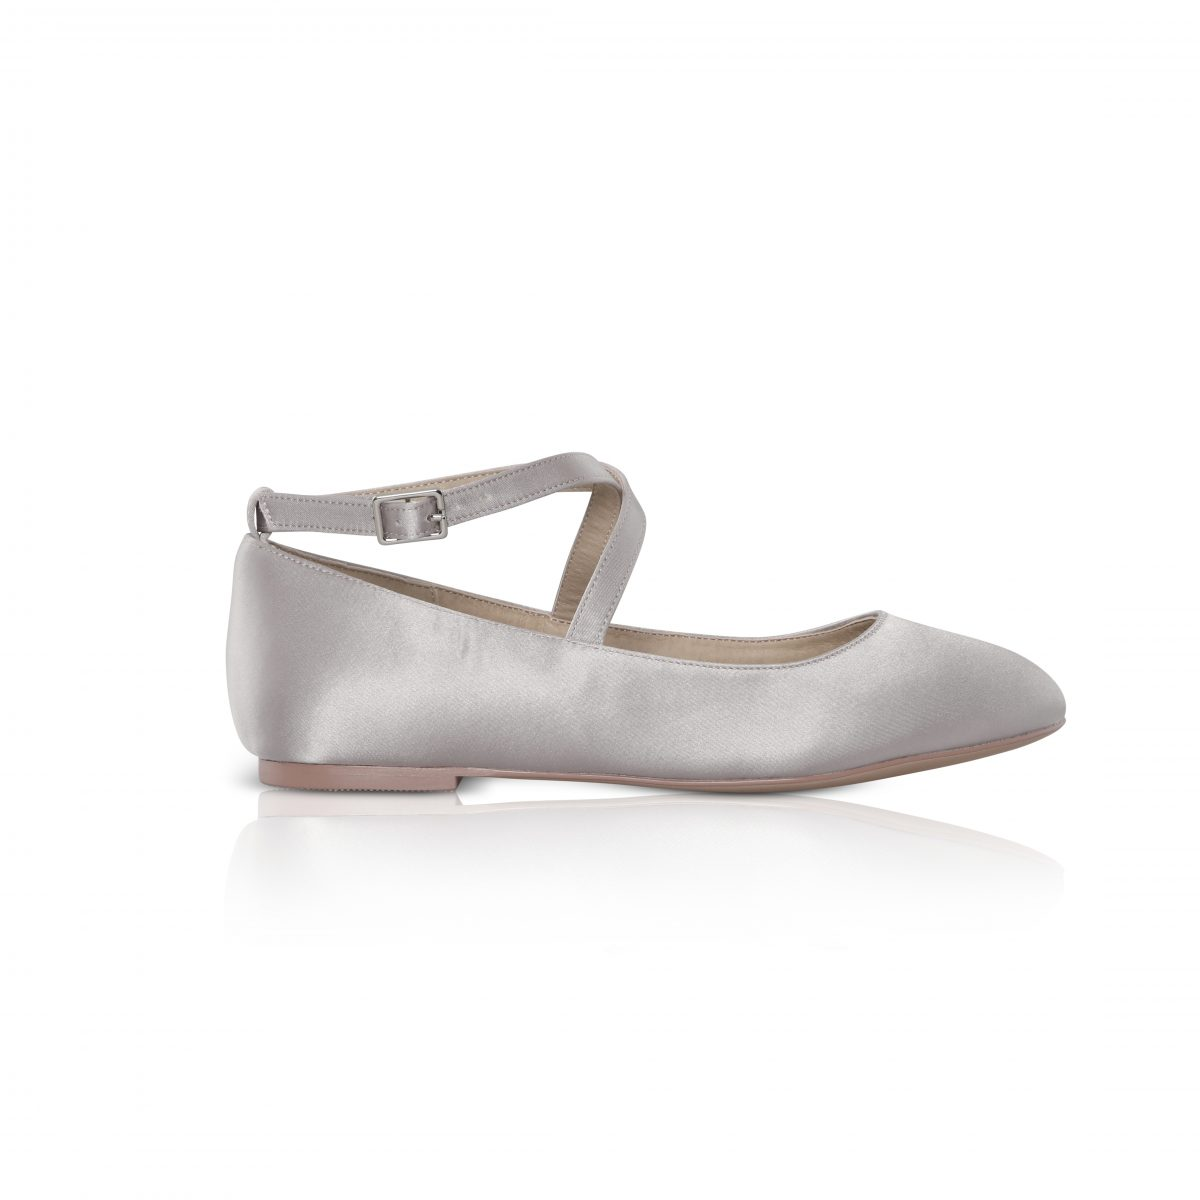 Perfect Bridal Kids - Lena Shoes - Silver Satin 1